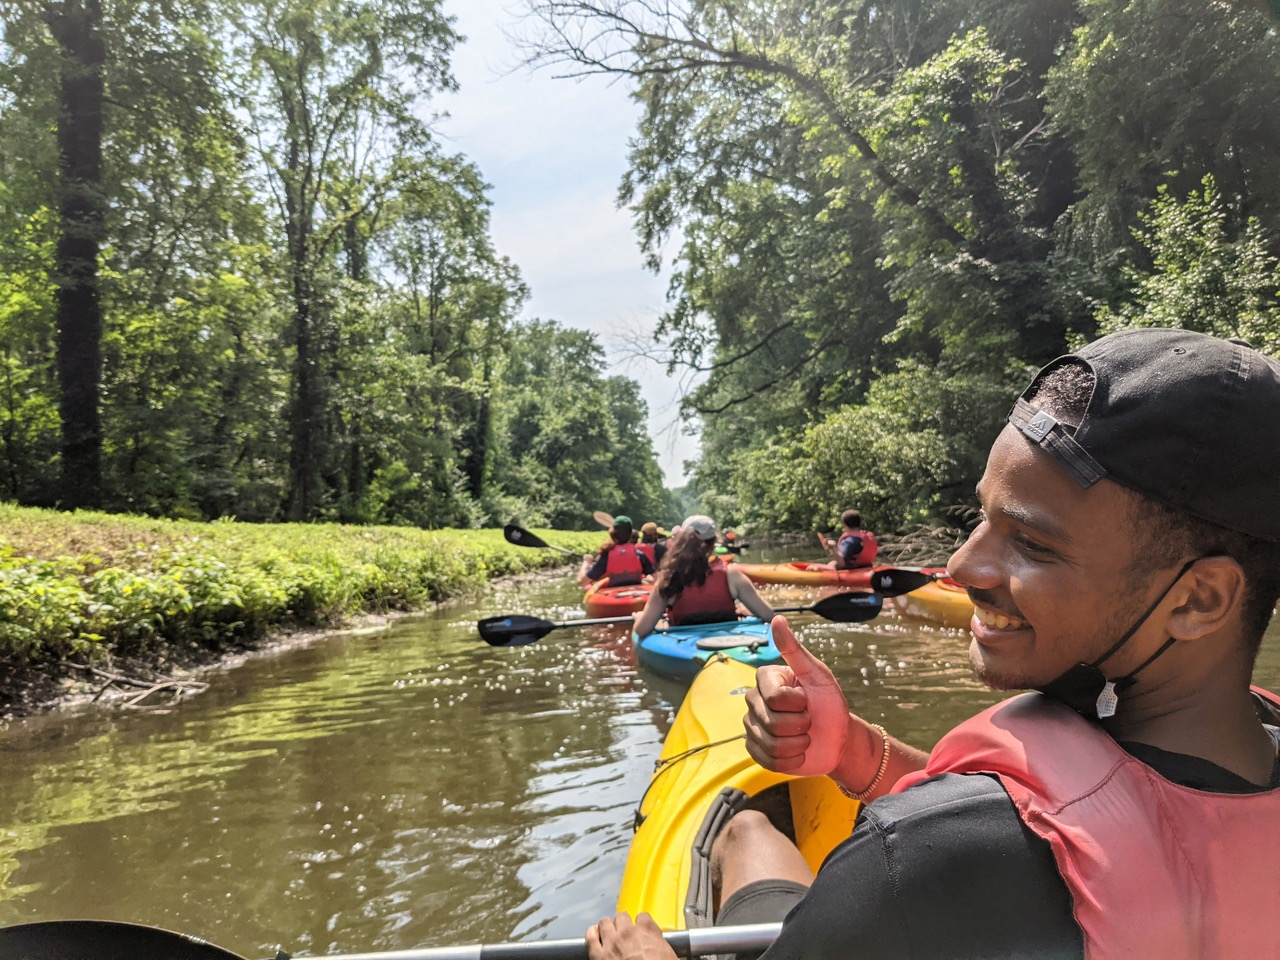 Andrew Atkerson, Senior Fellow on the Delaware Canal with other 2021 Fellows